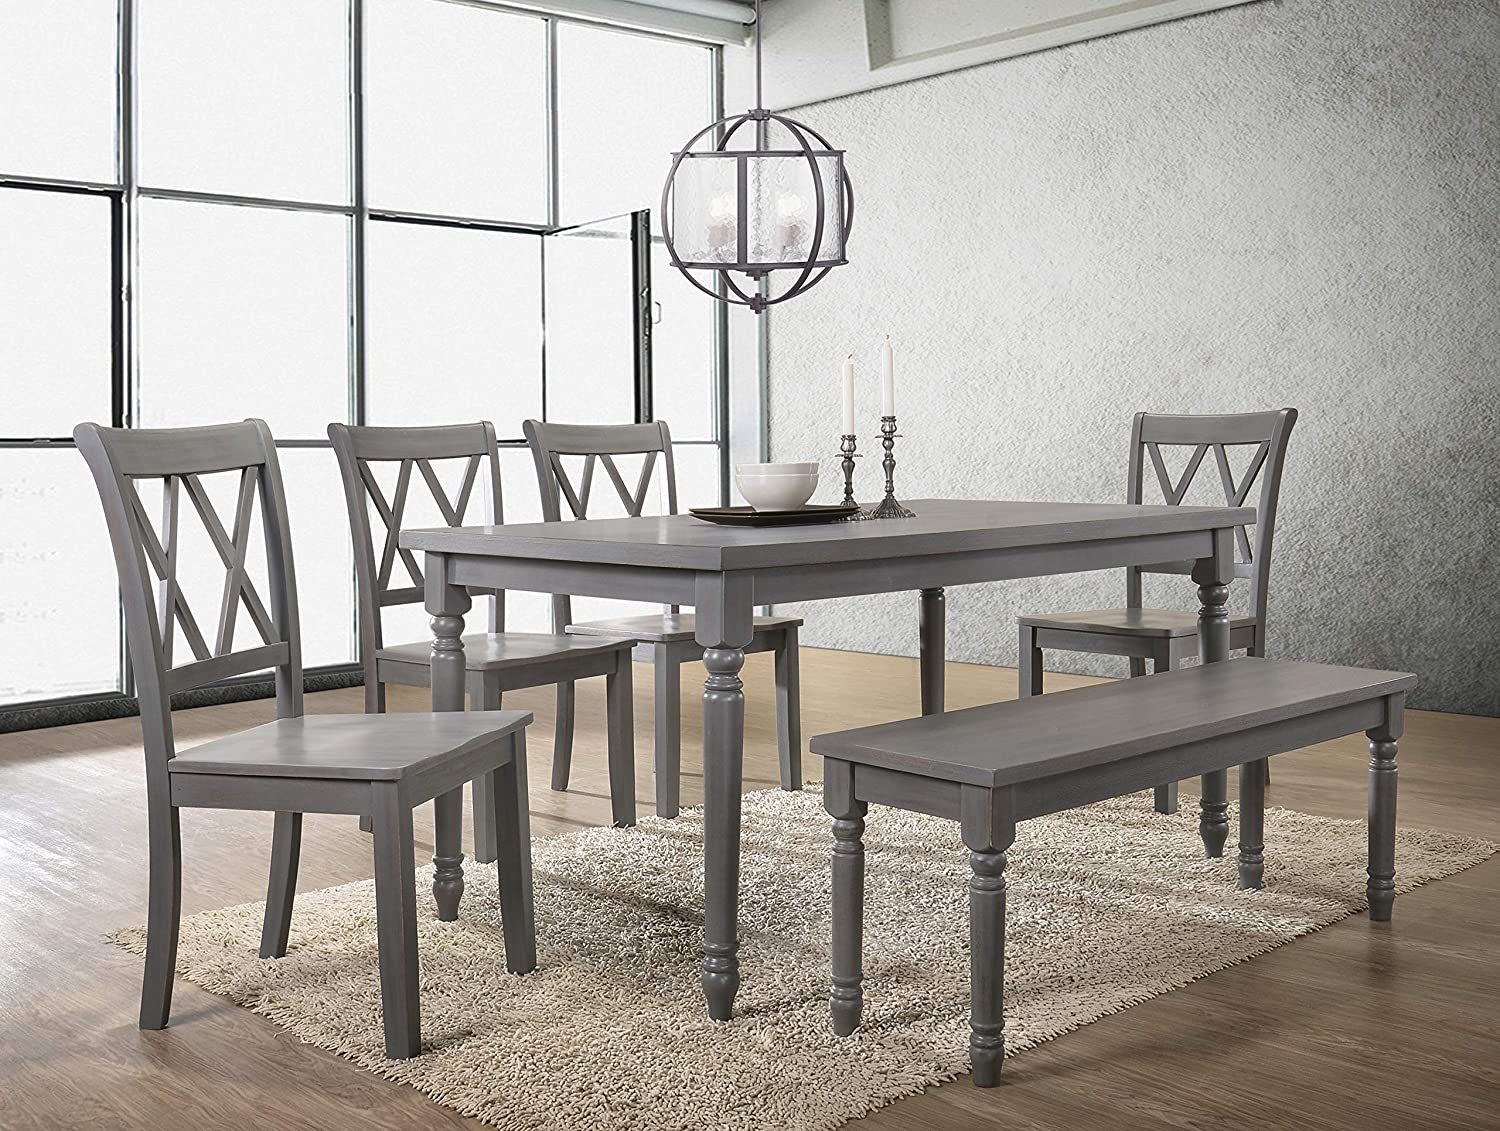 Amazon Com Best Master Furniture 6 Pcs Dining Set With Bench Rustic Grey Furniture Decor